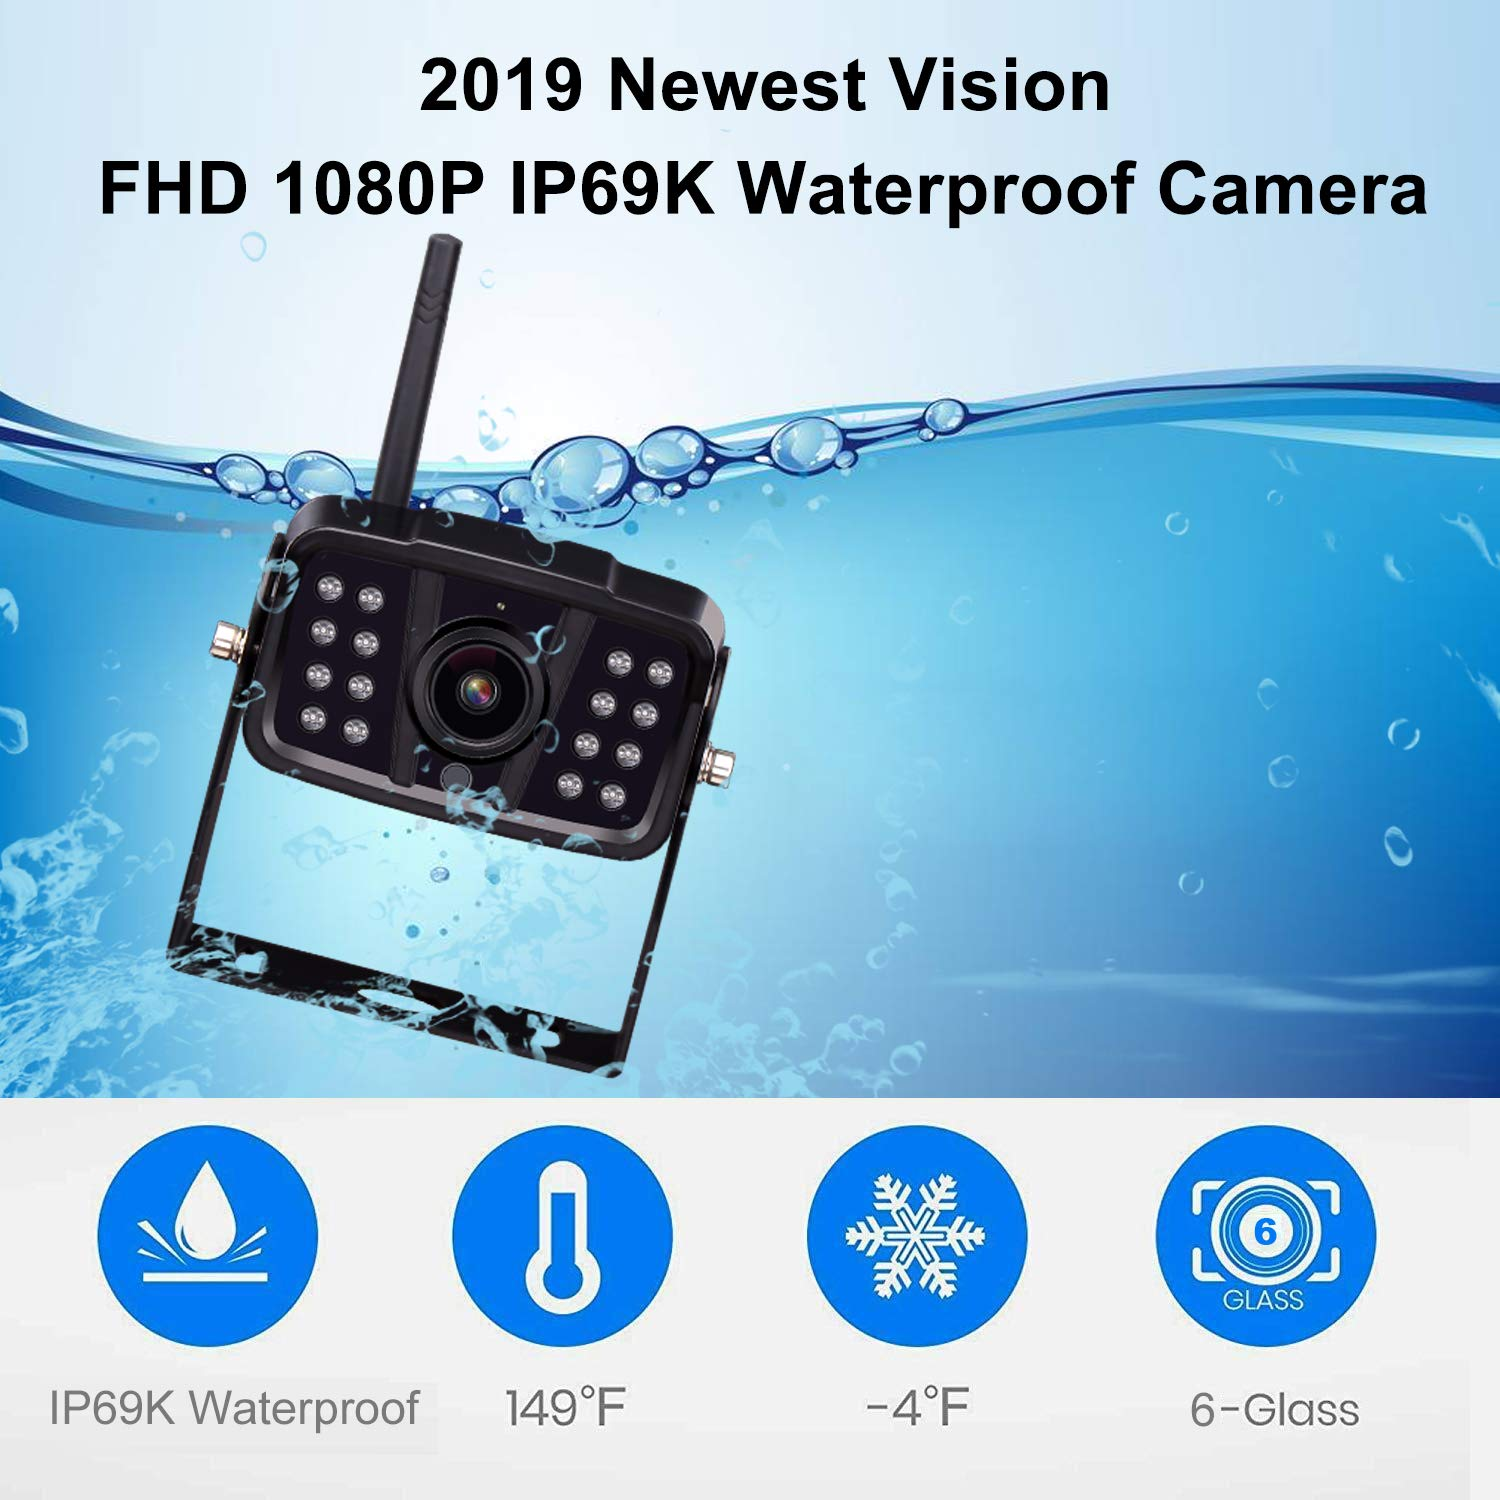 FHD 1080P Digital Wireless Backup Camera and Monitor Kit High-Speed Observation System for RVs//Motorhomes//Trucks//Trailers with 7\ Monitor Driving//Reversing Use IP69K Waterproof Super Night Vision